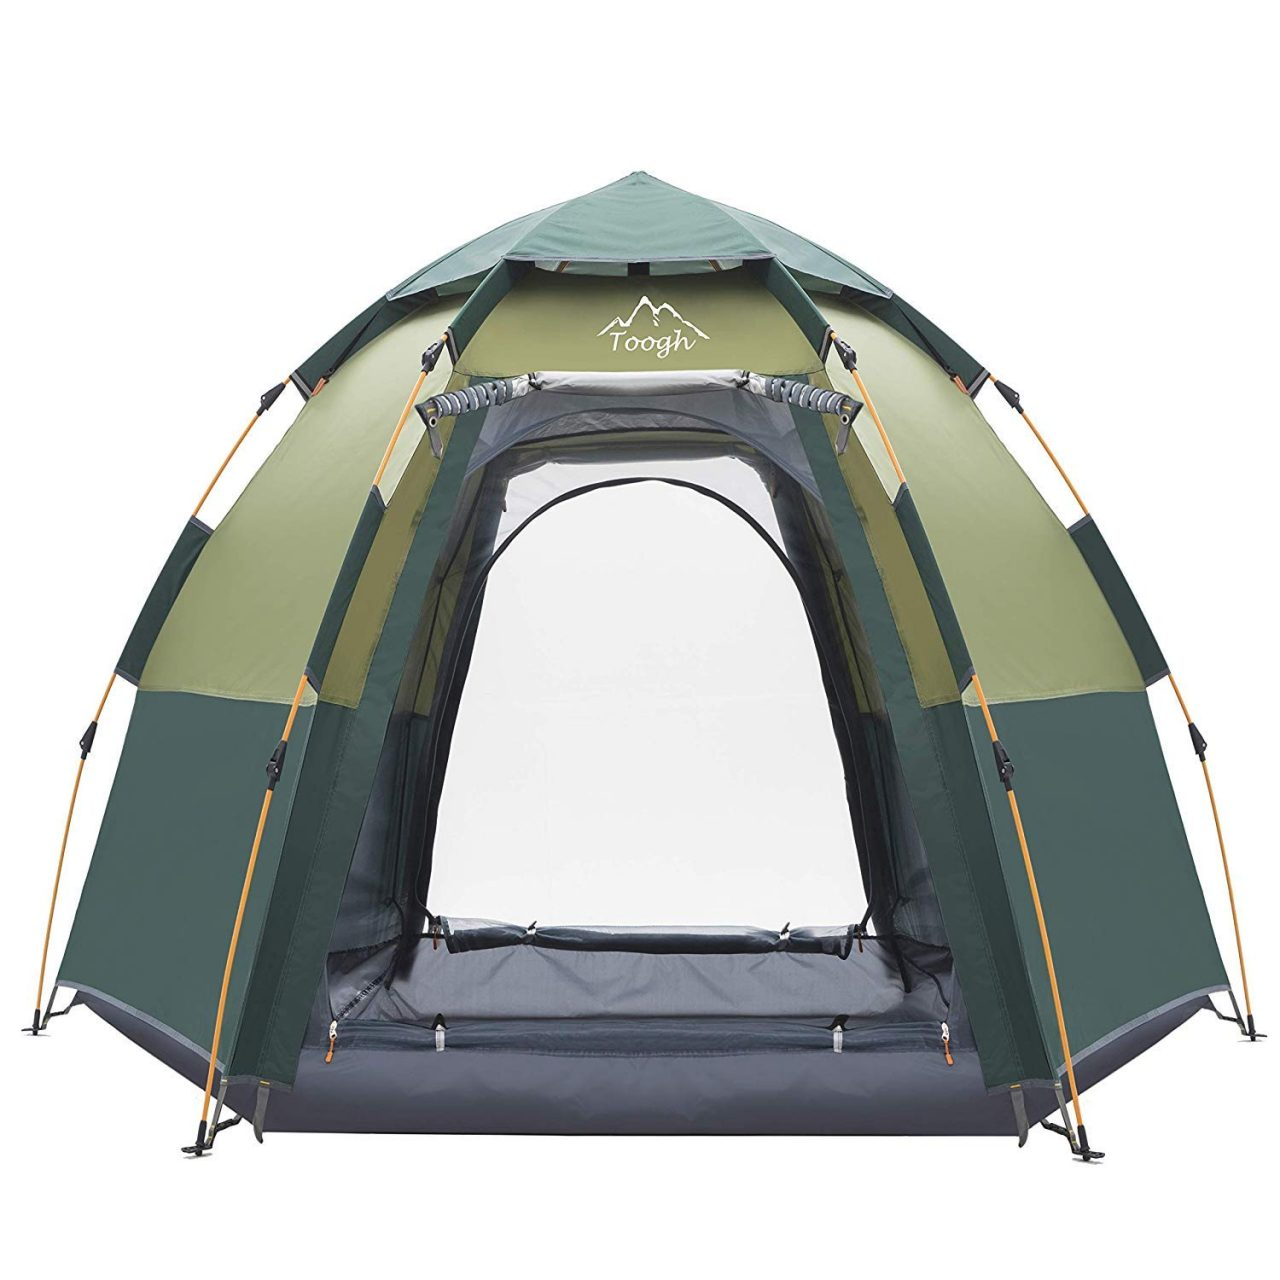 Toogh 3-4 Person Camping Tent Backpacking Tents